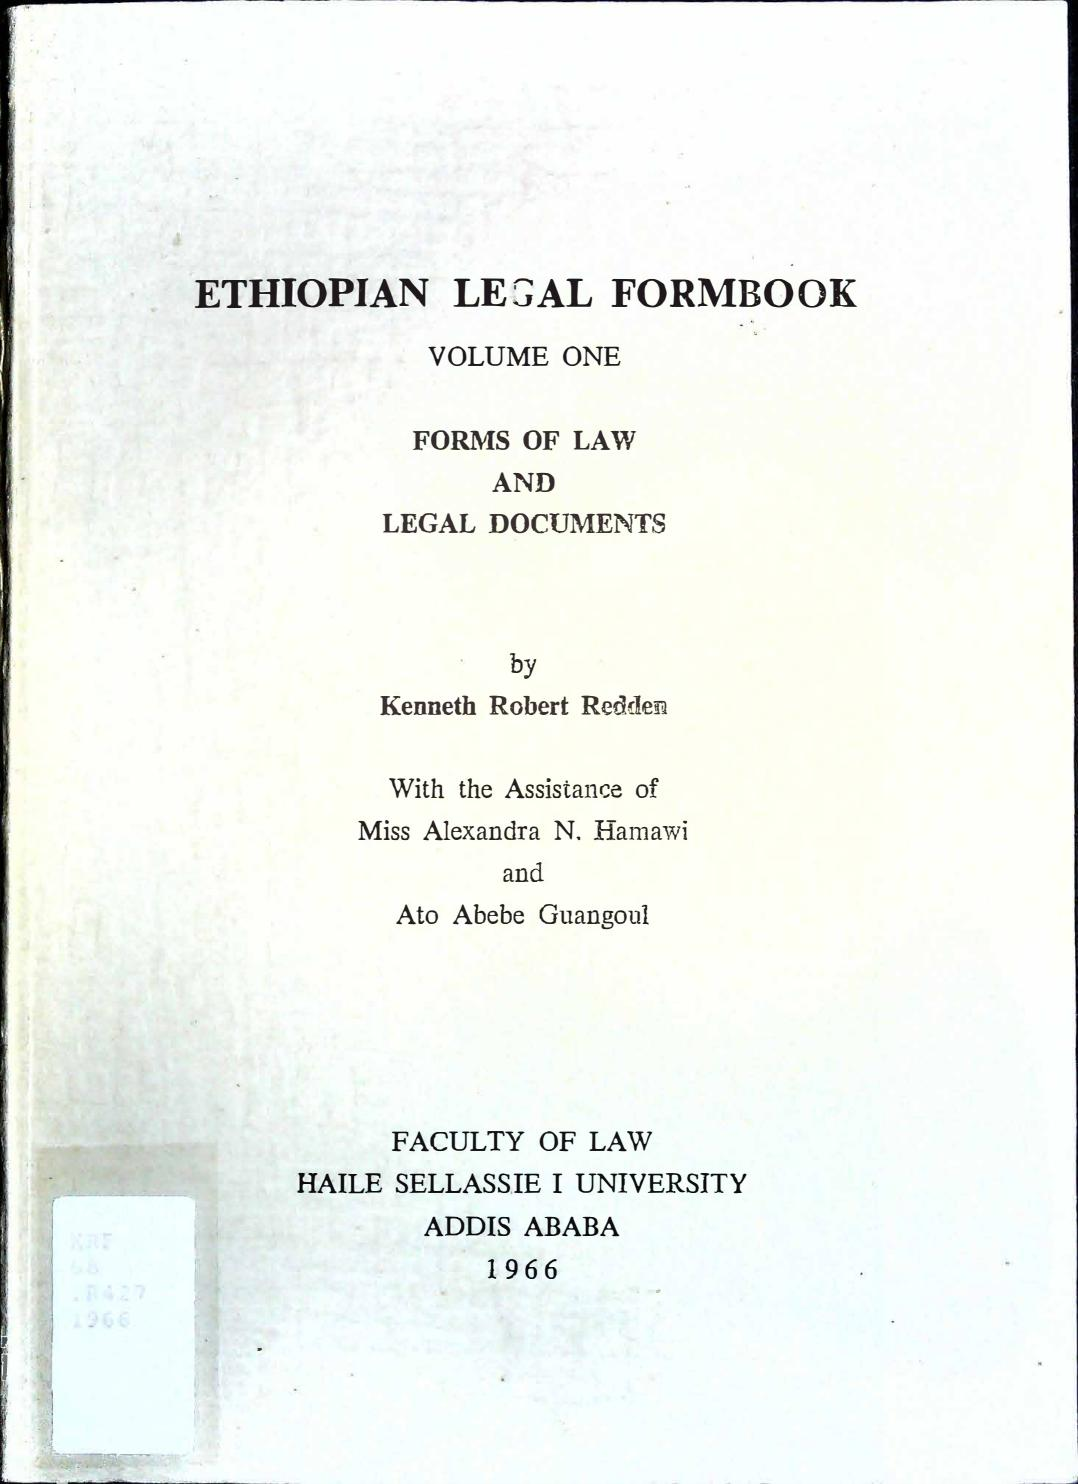 Ethiopian Legal Formbook Vol  I by Kenneth Robert Redden (1966) by